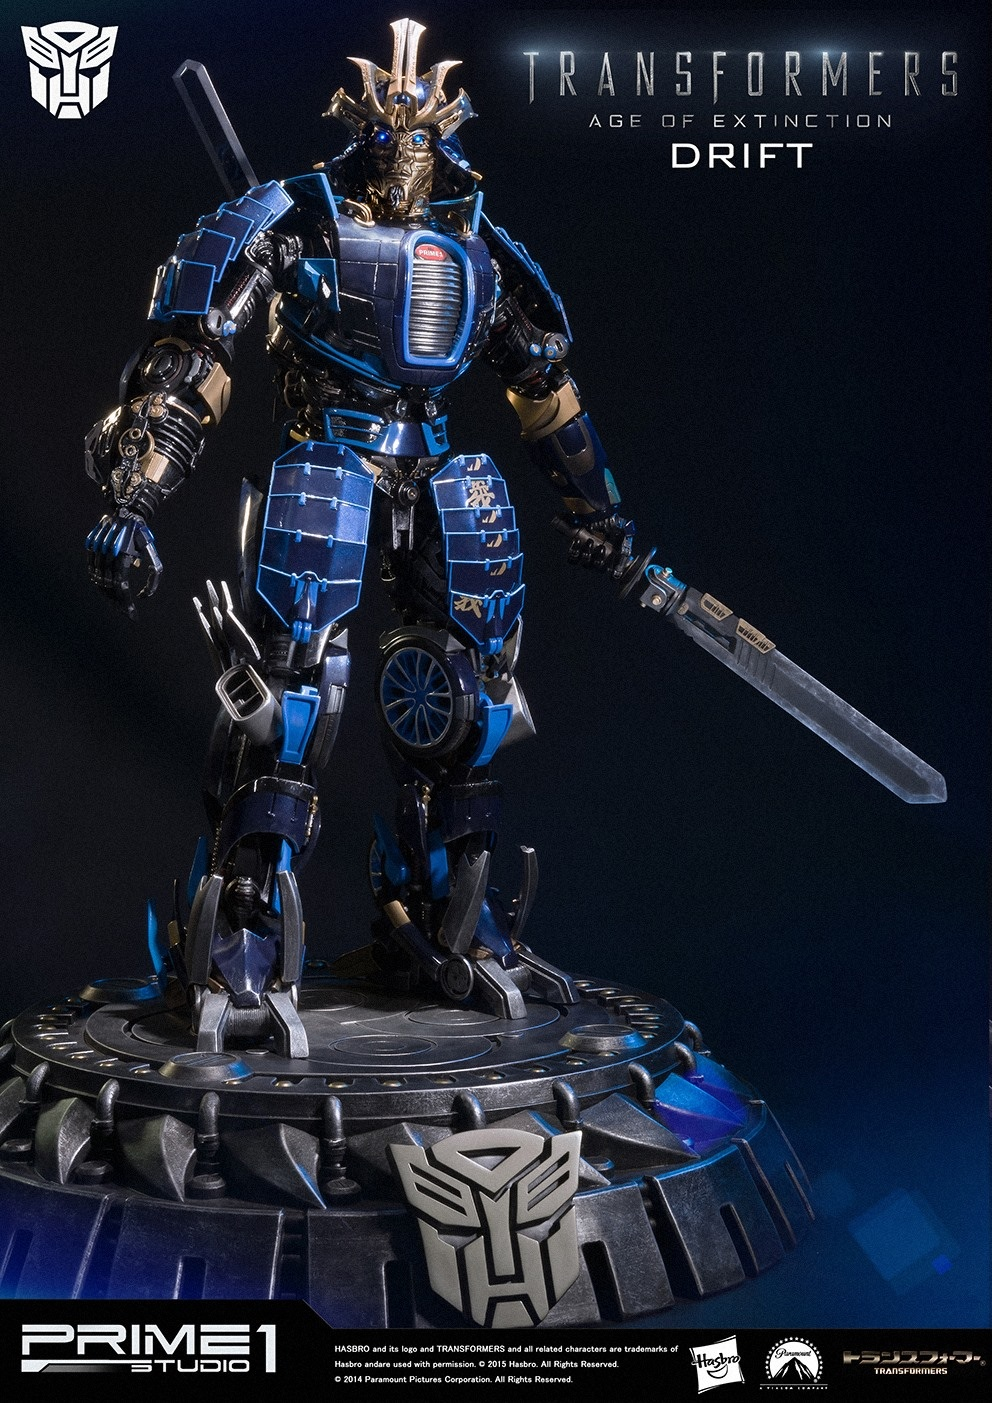 Statues des Films Transformers (articulé, non transformable) ― Par Prime1Studio, M3 Studio, Concept Zone, Super Fans Group, Soap Studio, Soldier Story Toys, etc - Page 3 668664image1423753813